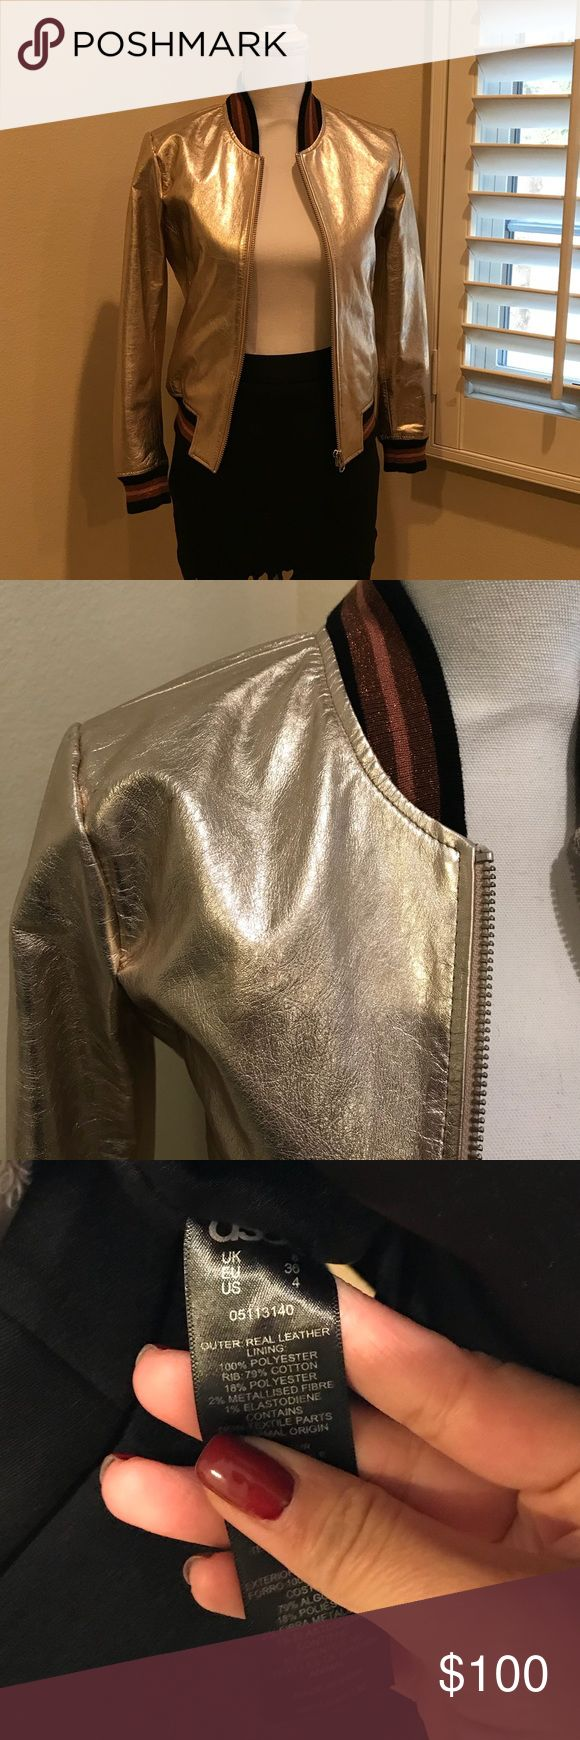 ASOS leather bomber jacket in Metallic ASOS Leather Bomber Jacket,US size 4.Very similar to the new Season Gucci leather jacket.Very stylish.Only wear once.Like brand new.Dont miss this piece! ASOS Jackets & Coats